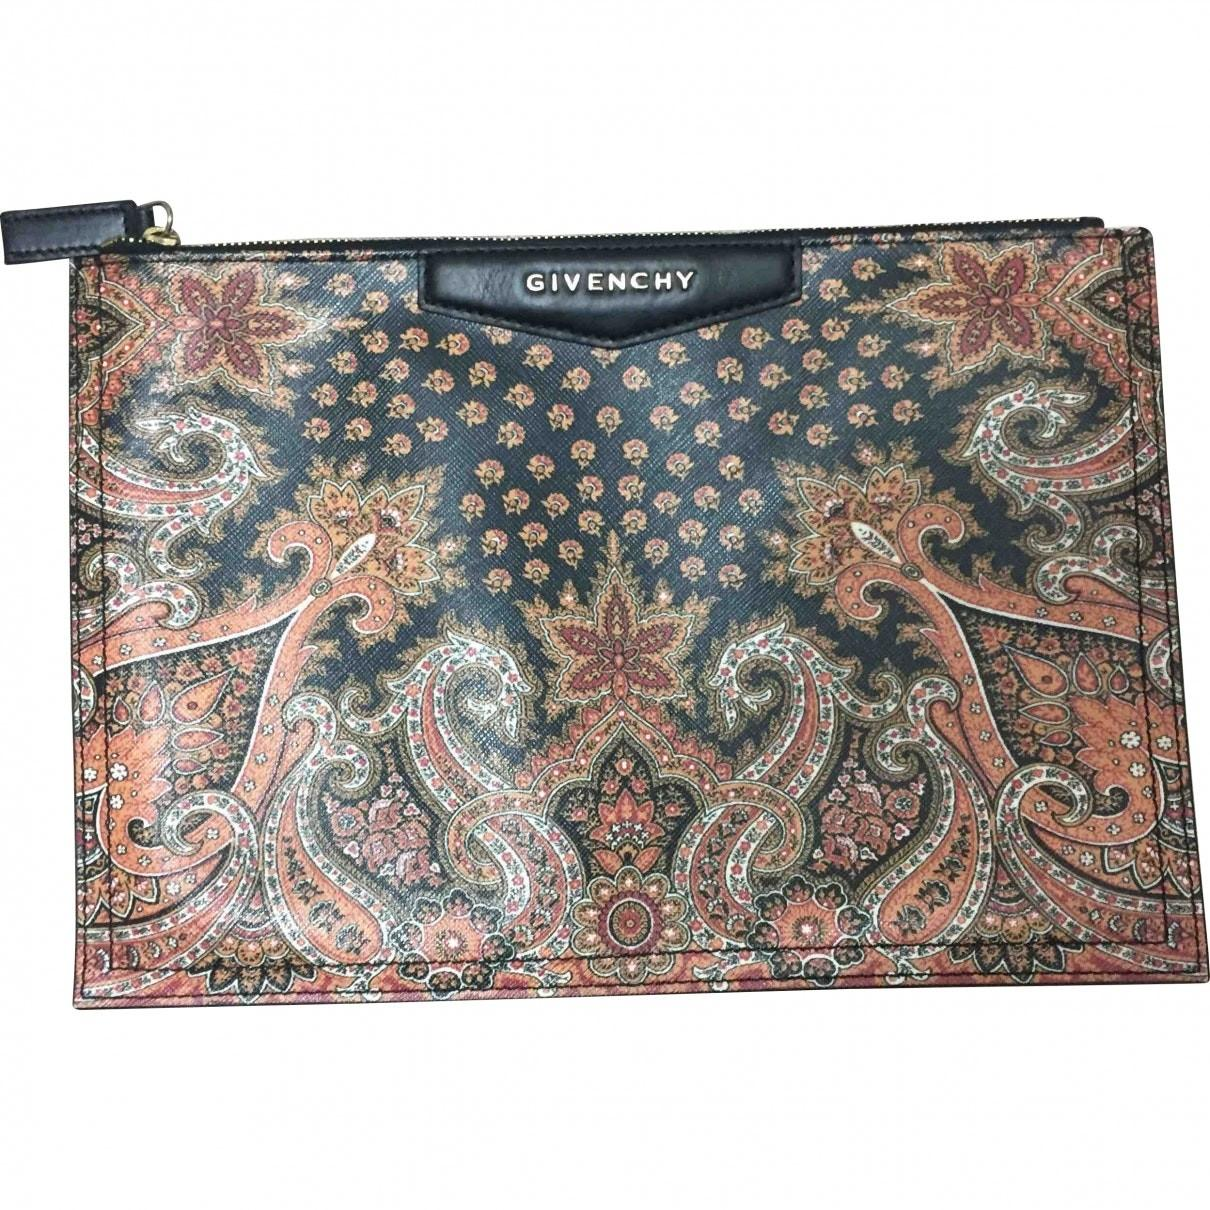 Floral Leather Givenchy Clutch Bag Vestiaire Collective